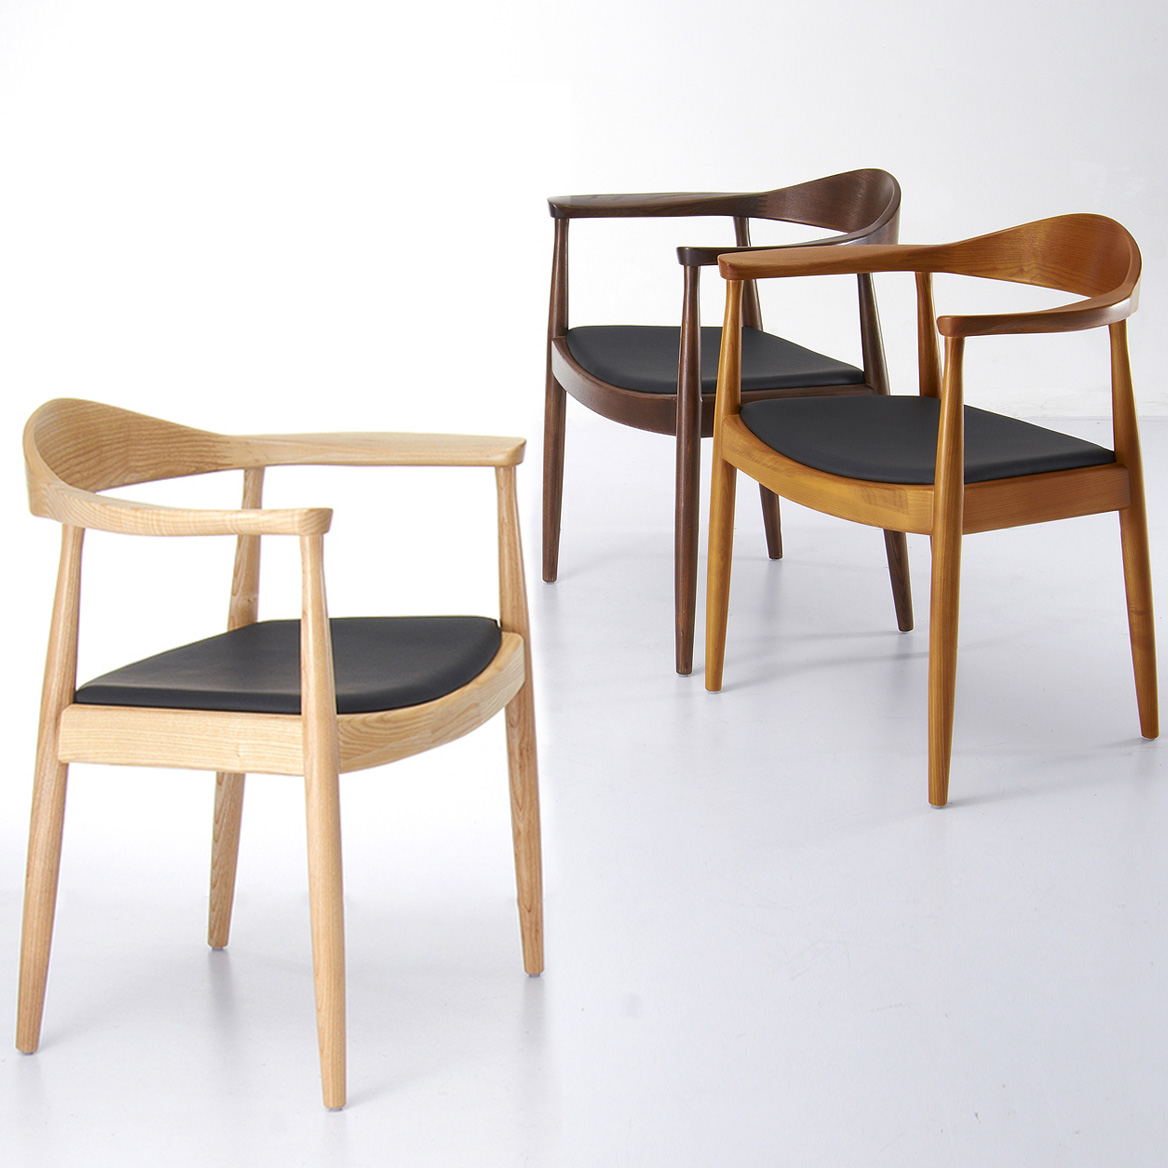 Usd 41 47 Simple Solid Wood Dining Chair Creative Coffee